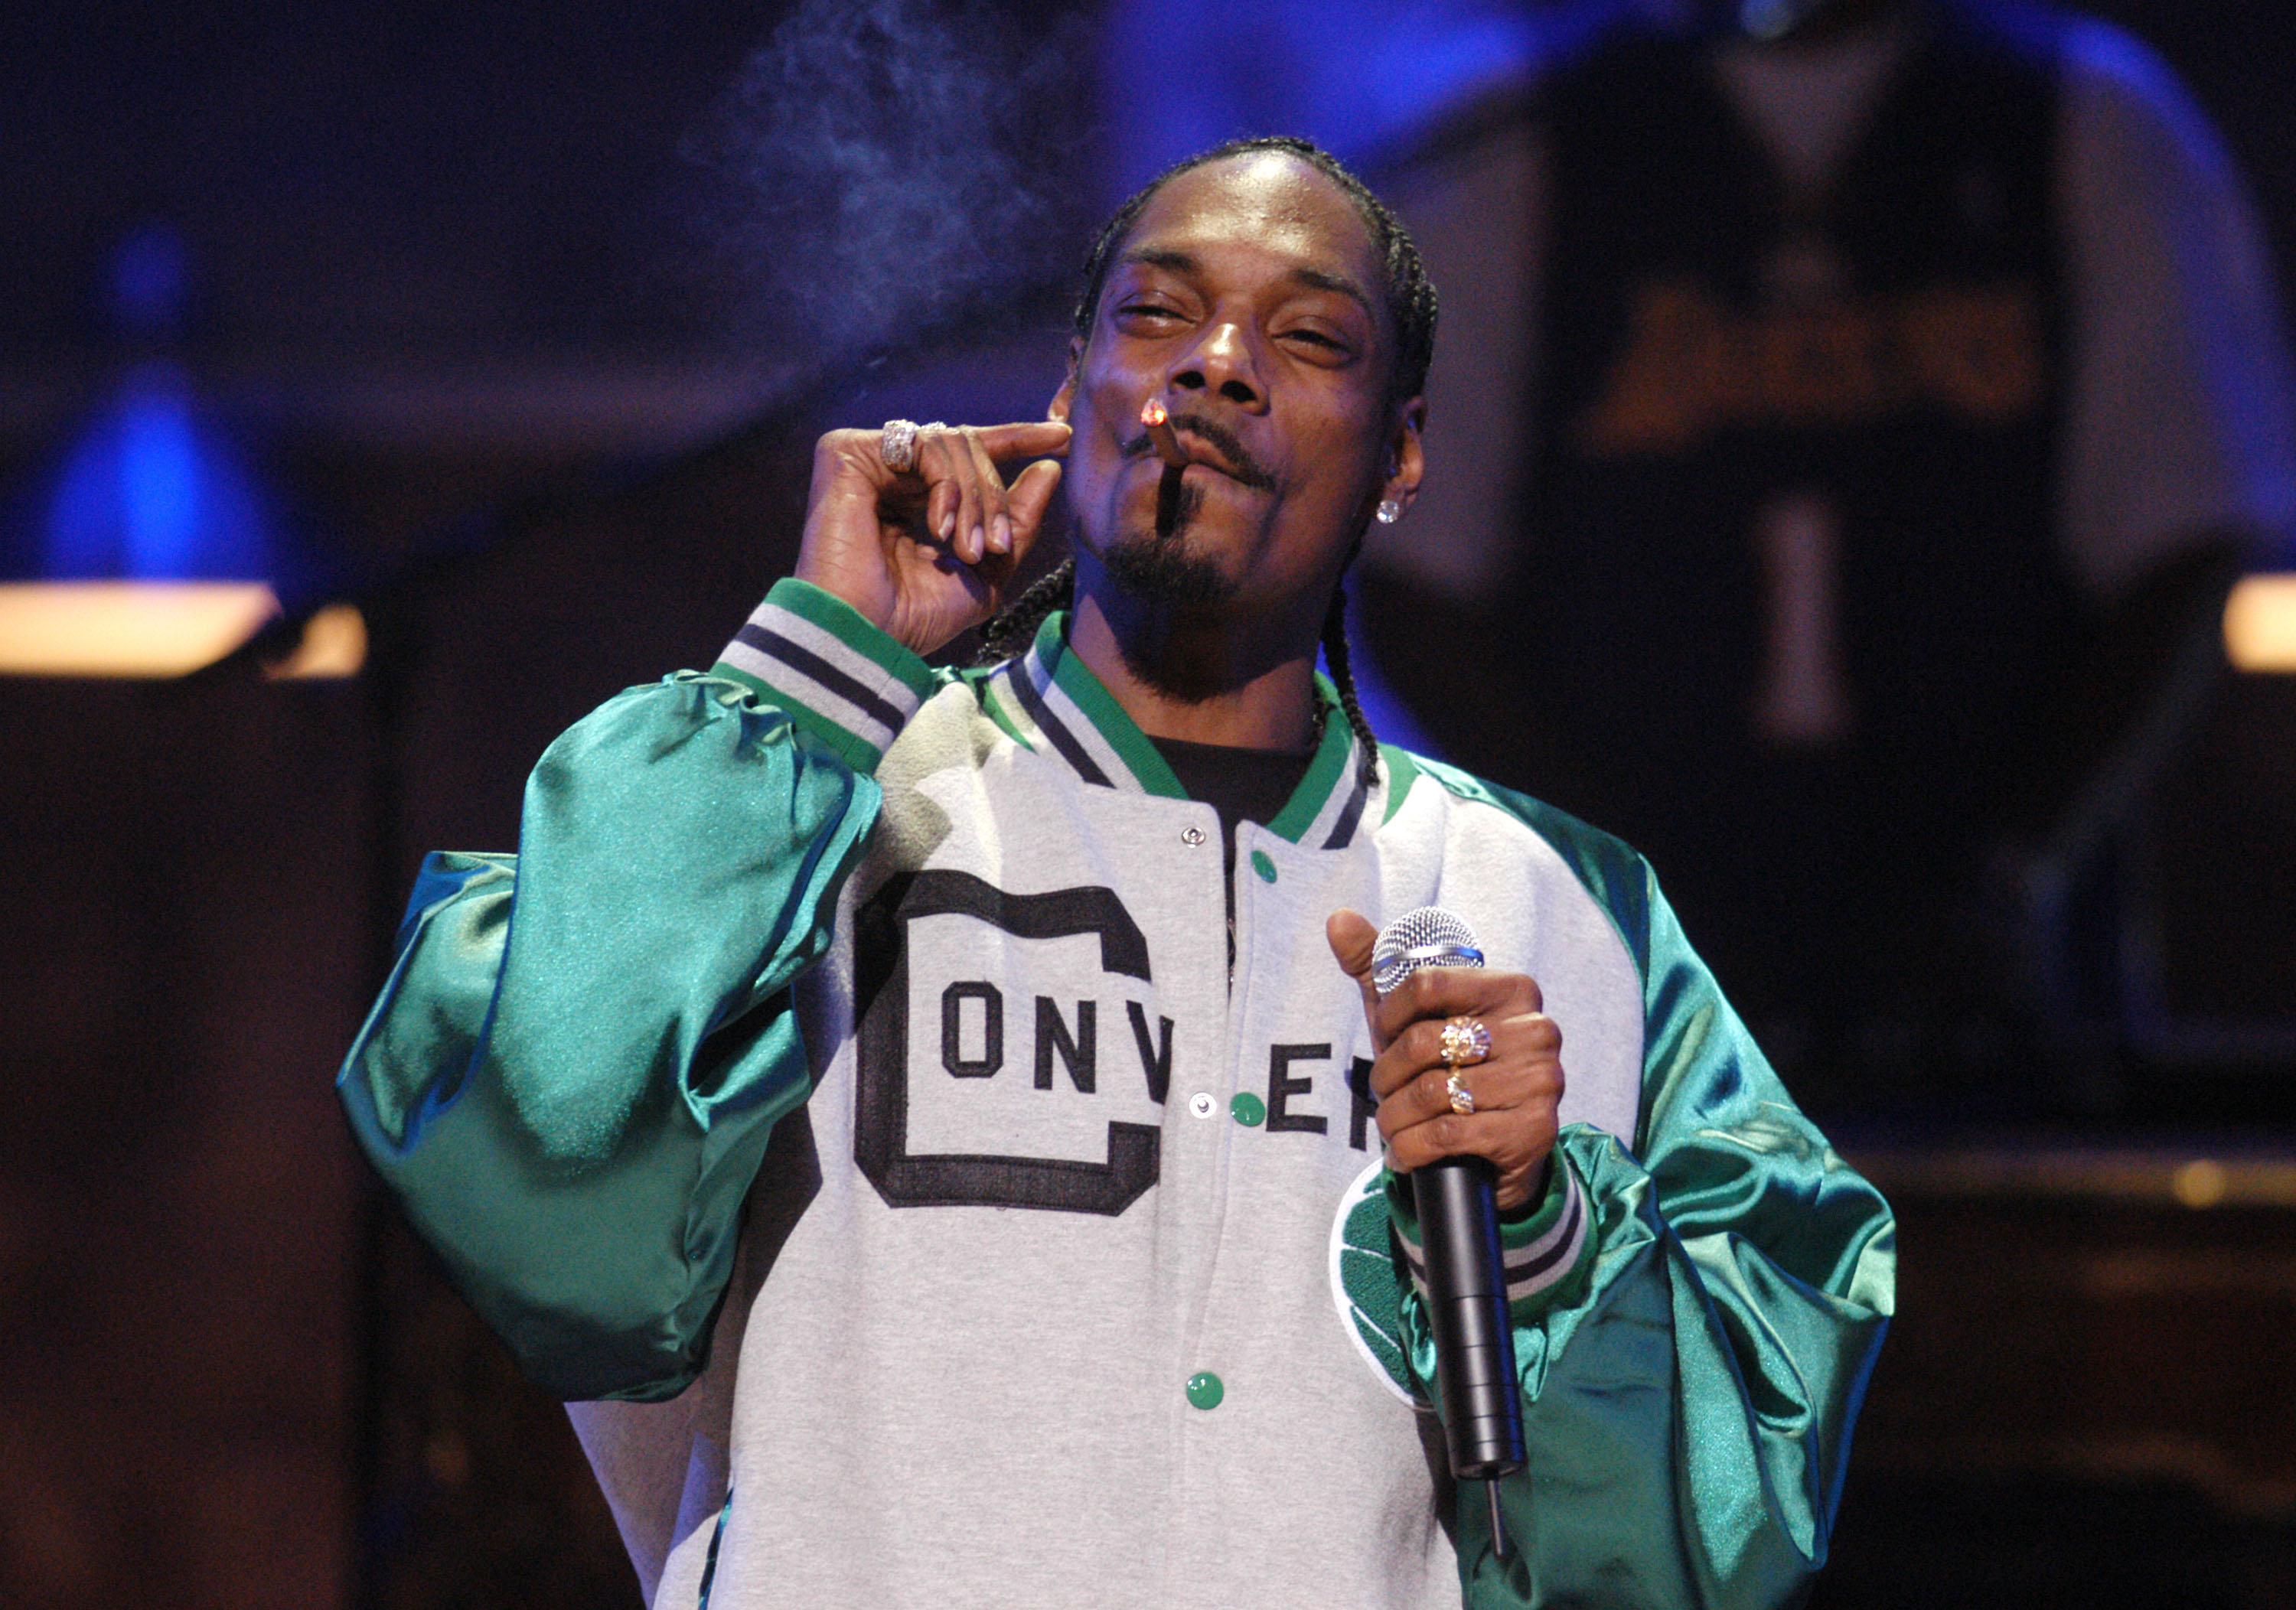 Snoop Dogg during COMEDY CENTRAL's Bar Mitzvah Bash! - Show at Hammerstein Ballroom in New York City, New York, United States